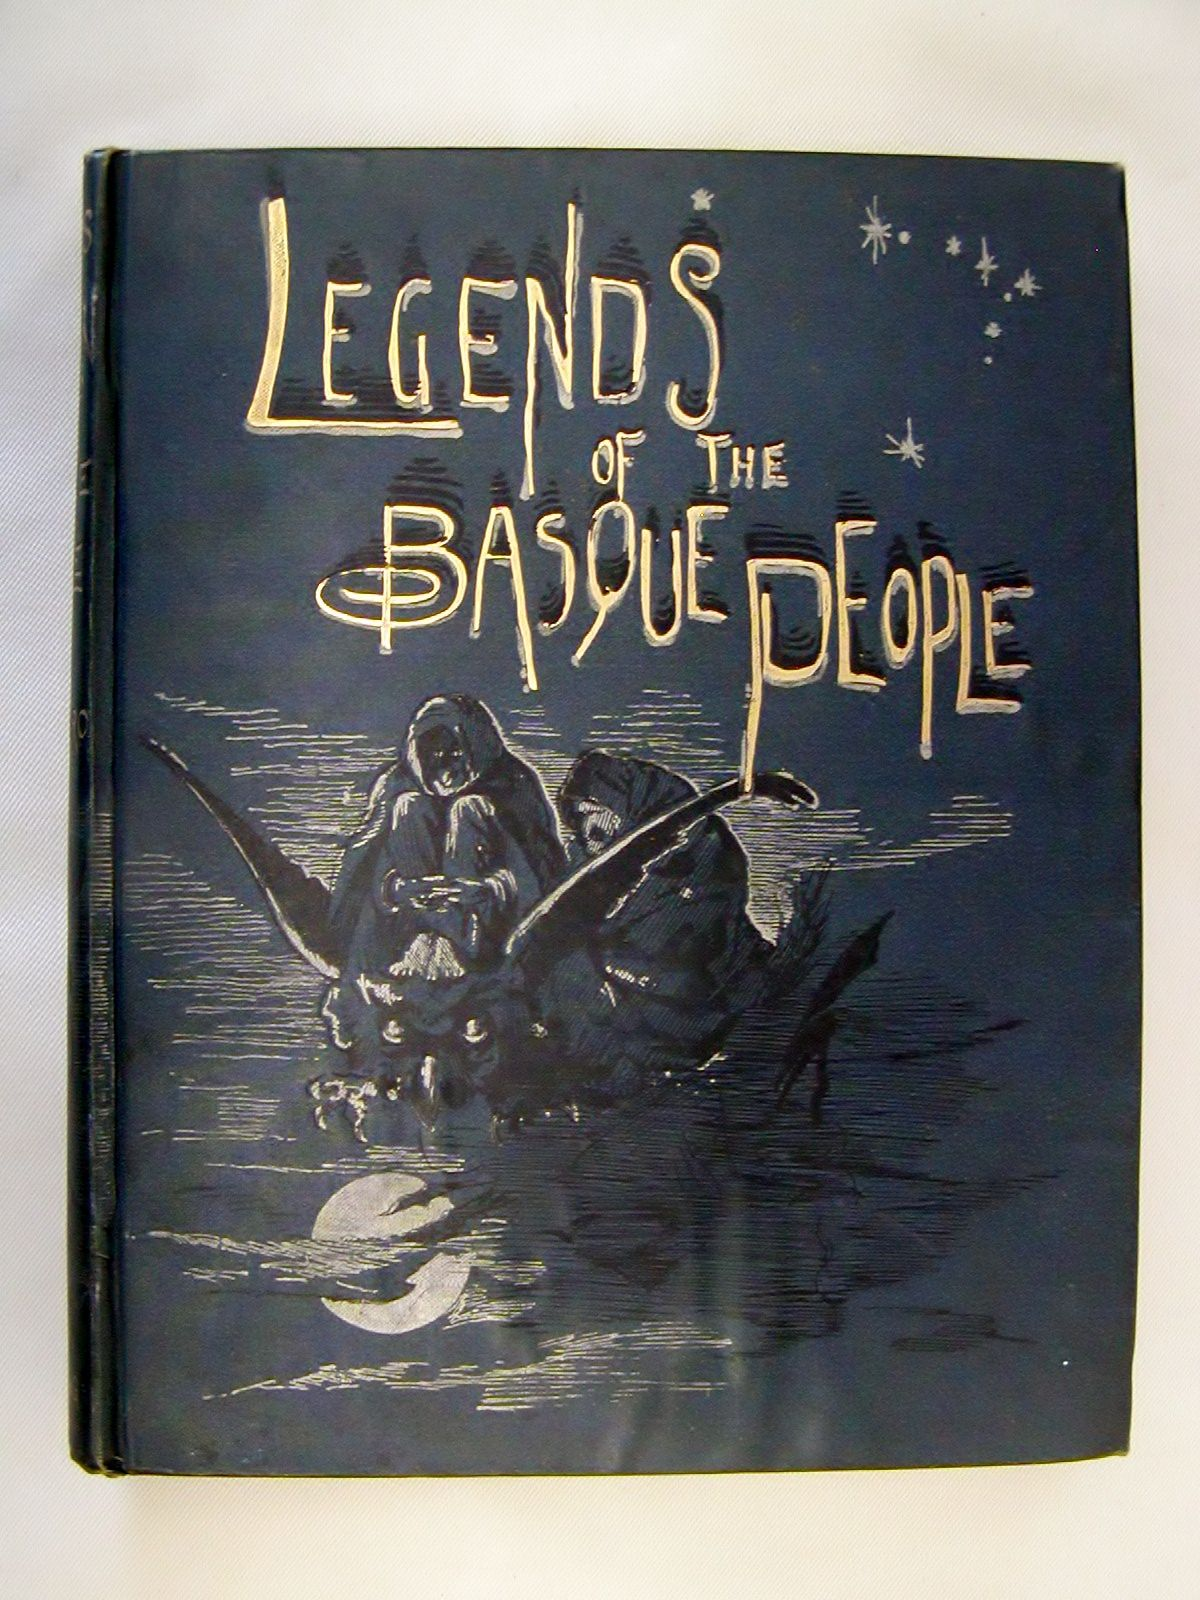 LEGENDS AND POPULAR TALES OF THE BASQUE PEOPLE by Mariana